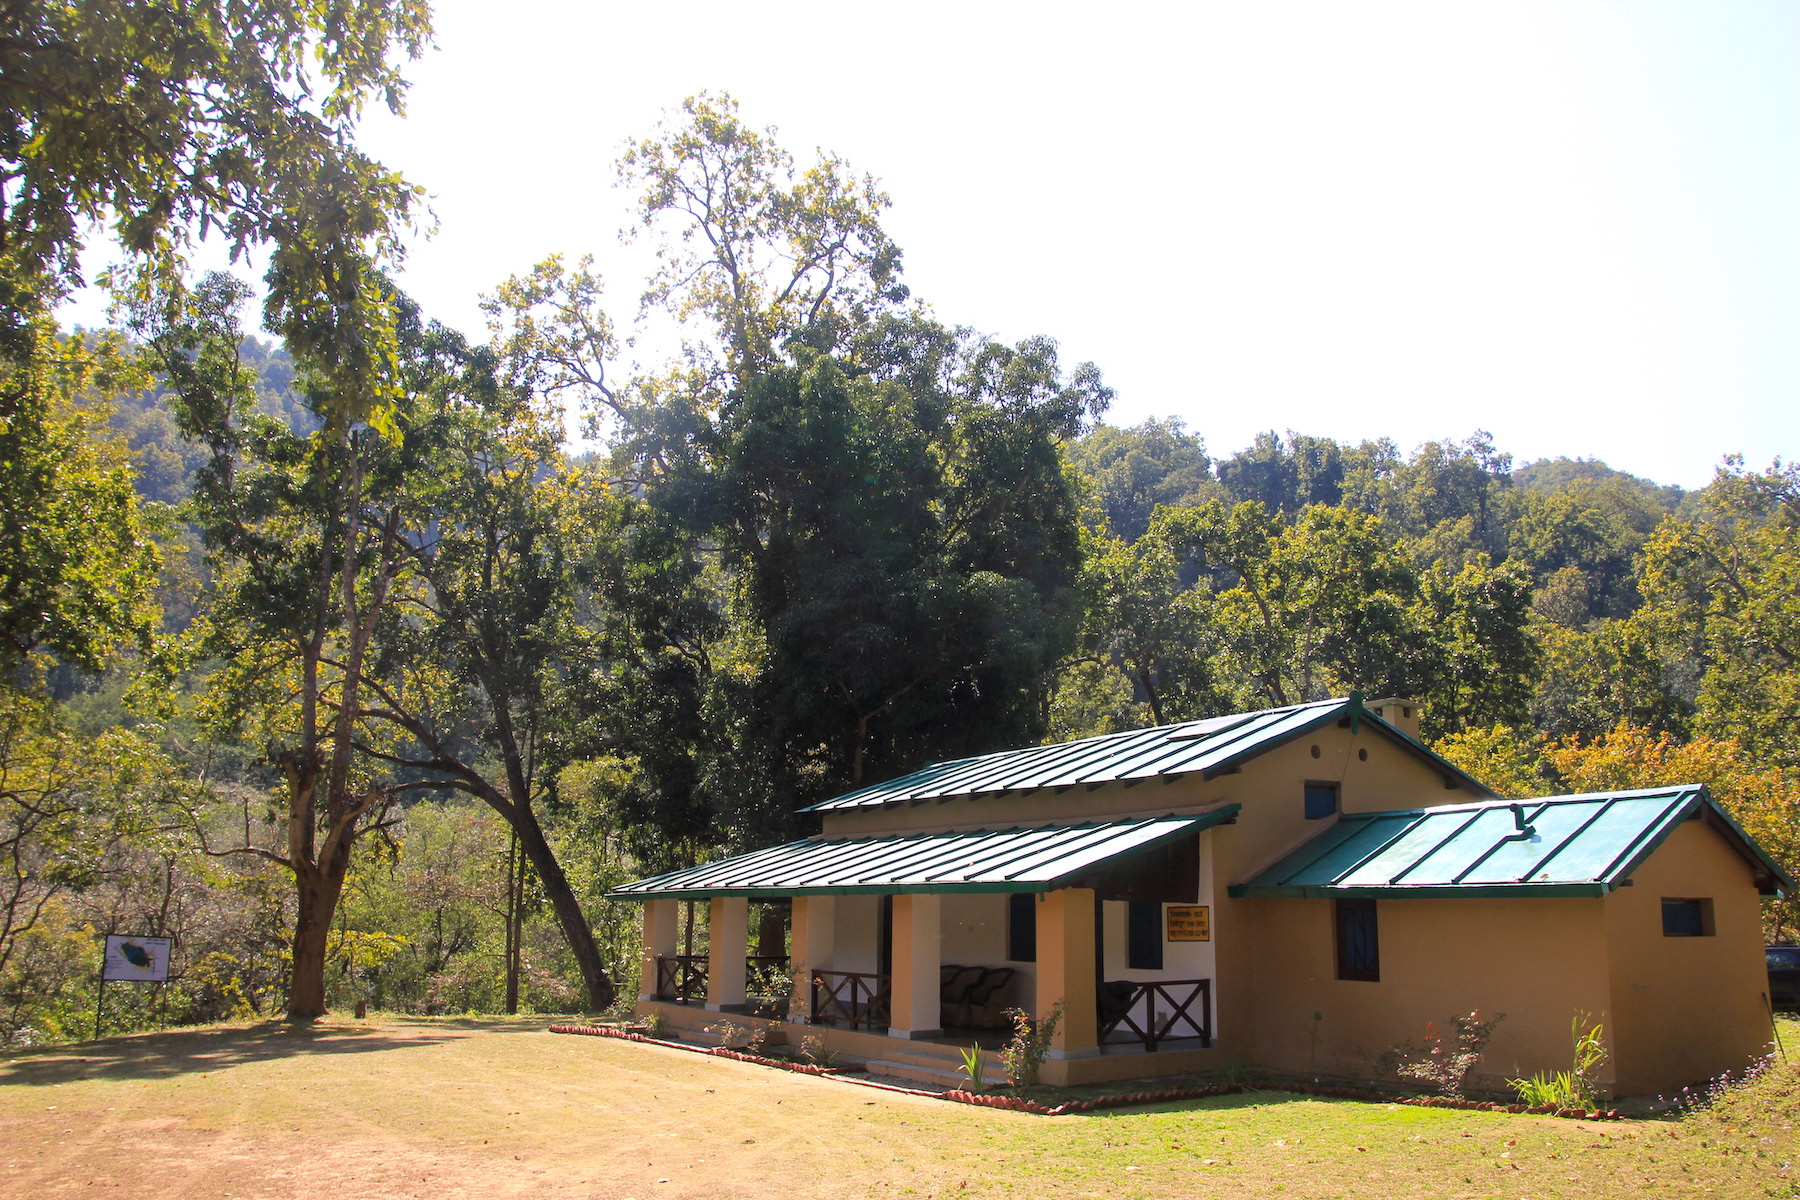 The 117 year old Mundiyapani Forest Rest House in Kalagarh Division. Sitting atop a hillock clearing, overlooking the gurgling perennial Mundiyapani stream and the Mundiyapani forest chowki, the quaint bungalow teleports one into a world long gone. Photo: Raza Kazmi  A cheetal wades through the Palain river, the lifeline of Corbett Tiger Reserve's Kalagarh Division, at Halduparao on a quiet winter morning. Cover photo: Raza Kazmi